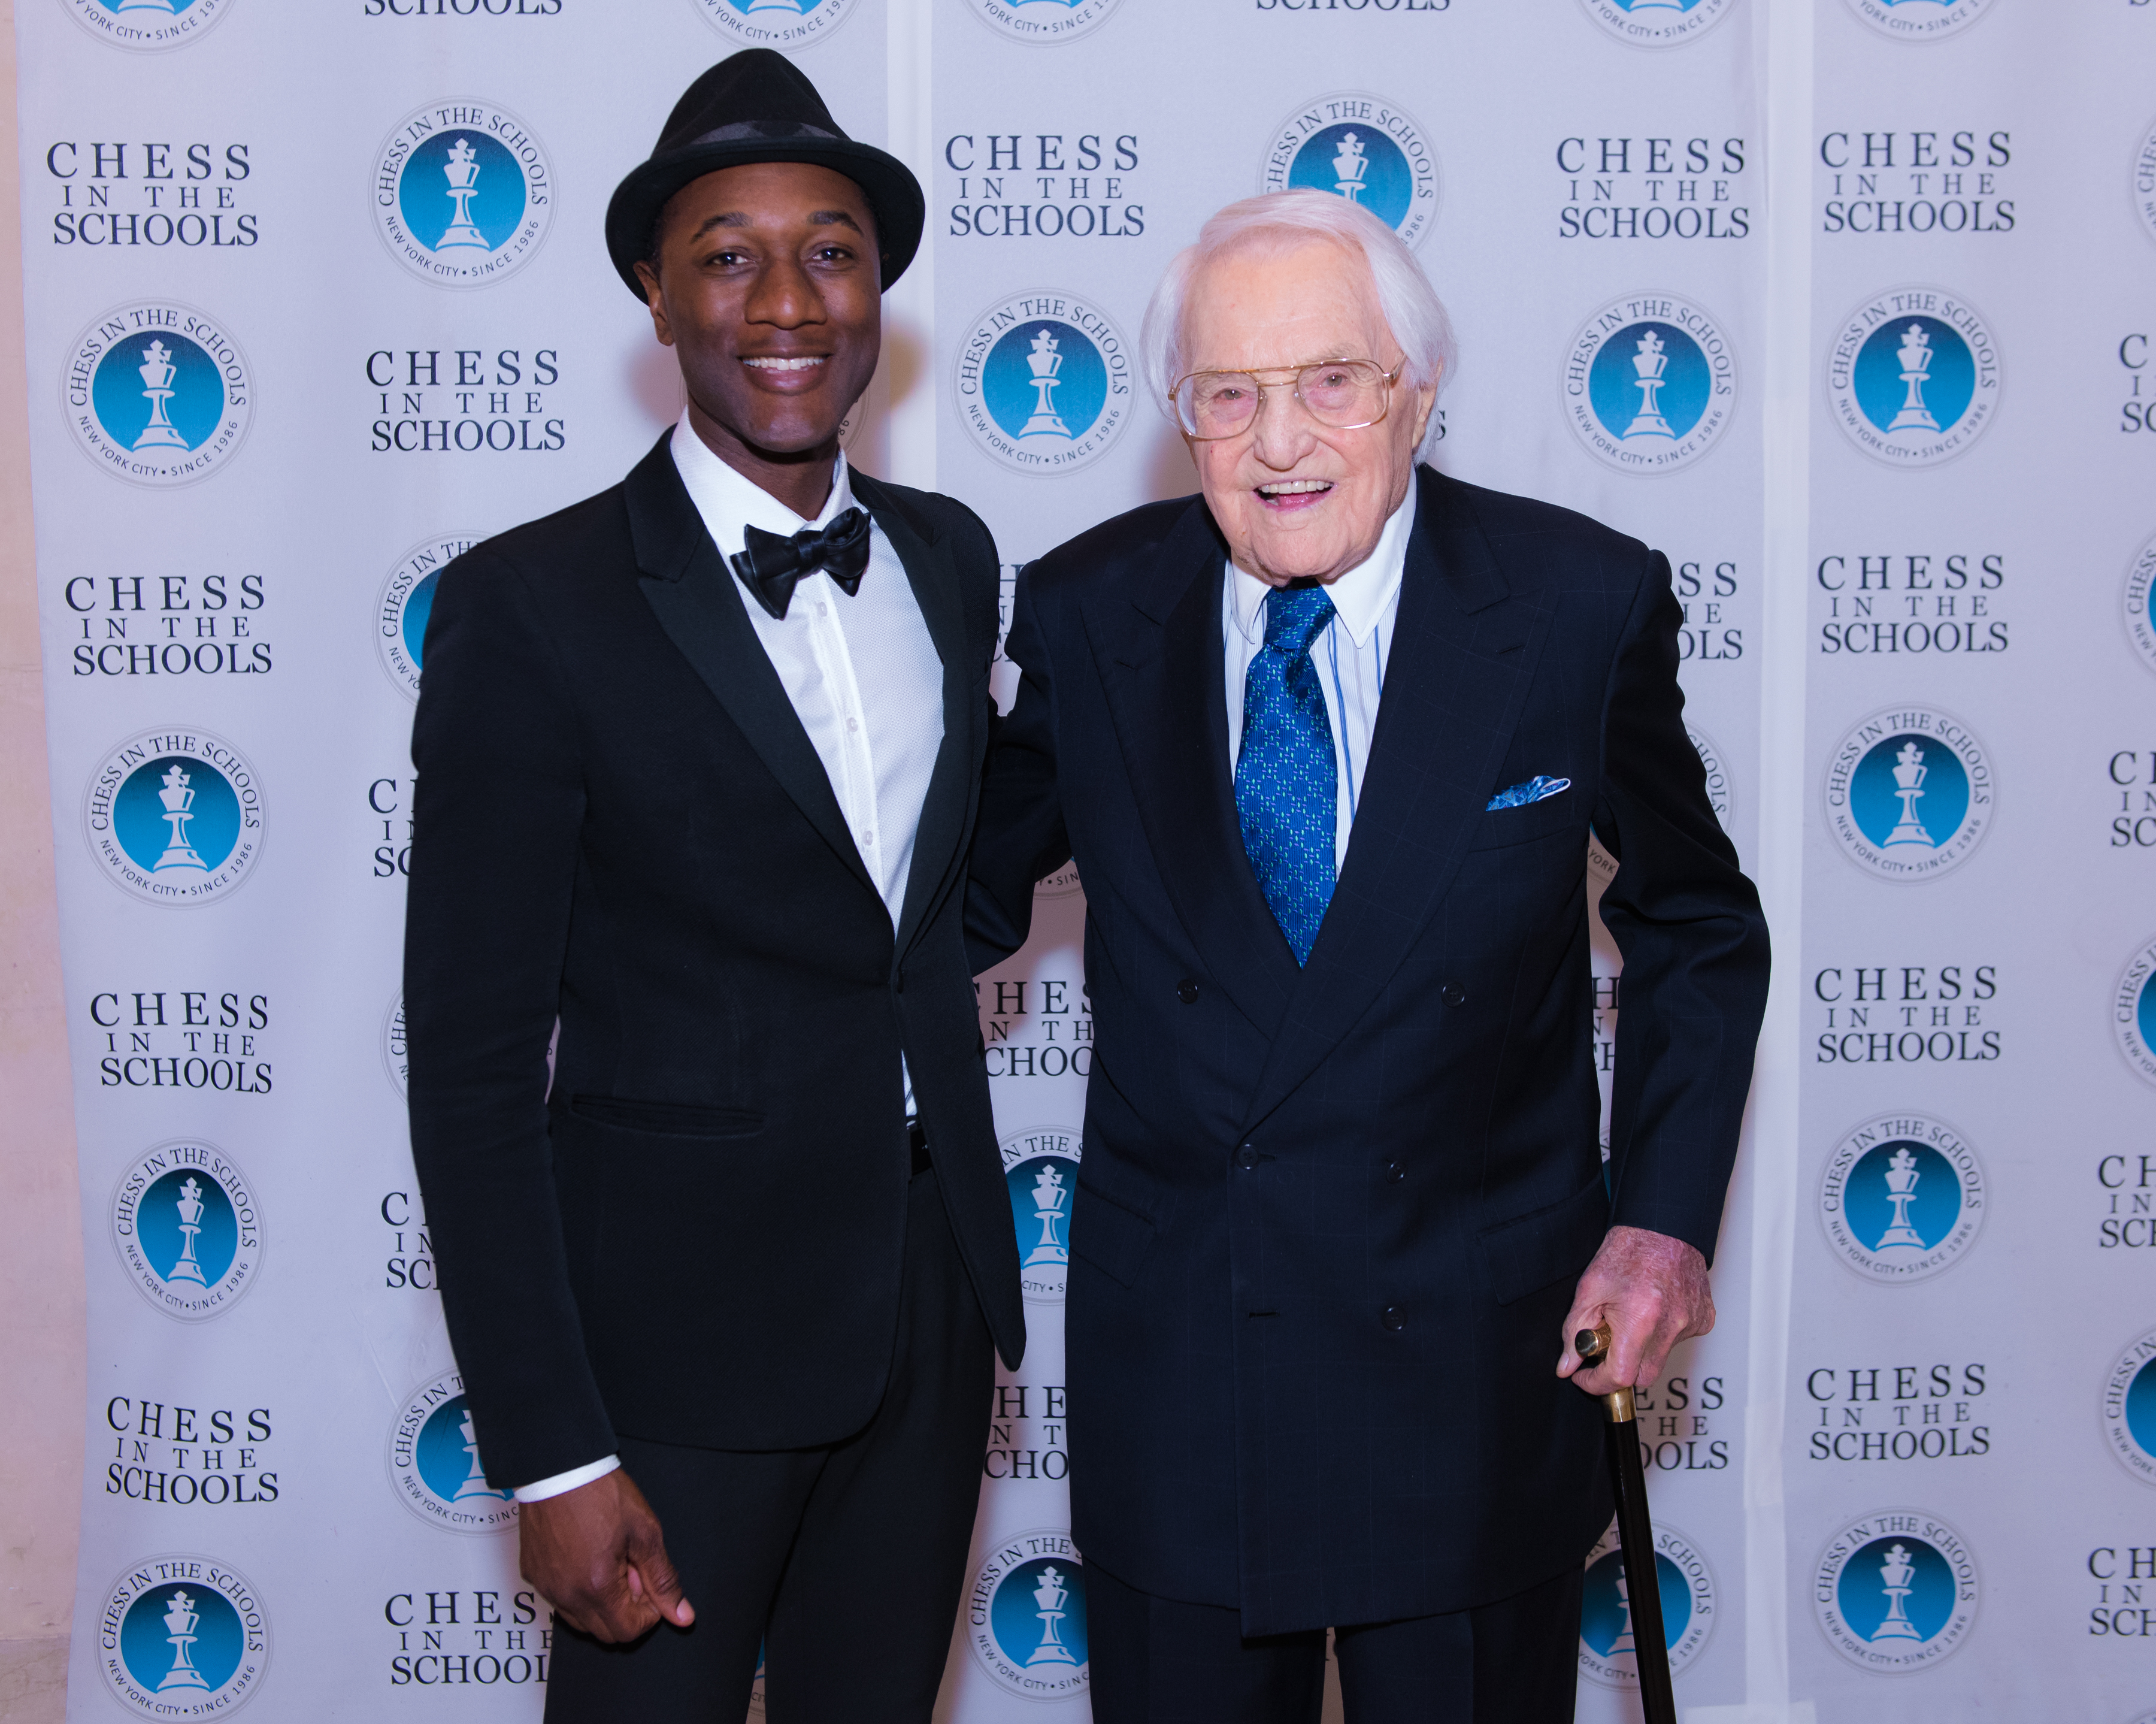 Aloe Blacc and Lewis B. Cullman, Chairman of Chess in the Schools.